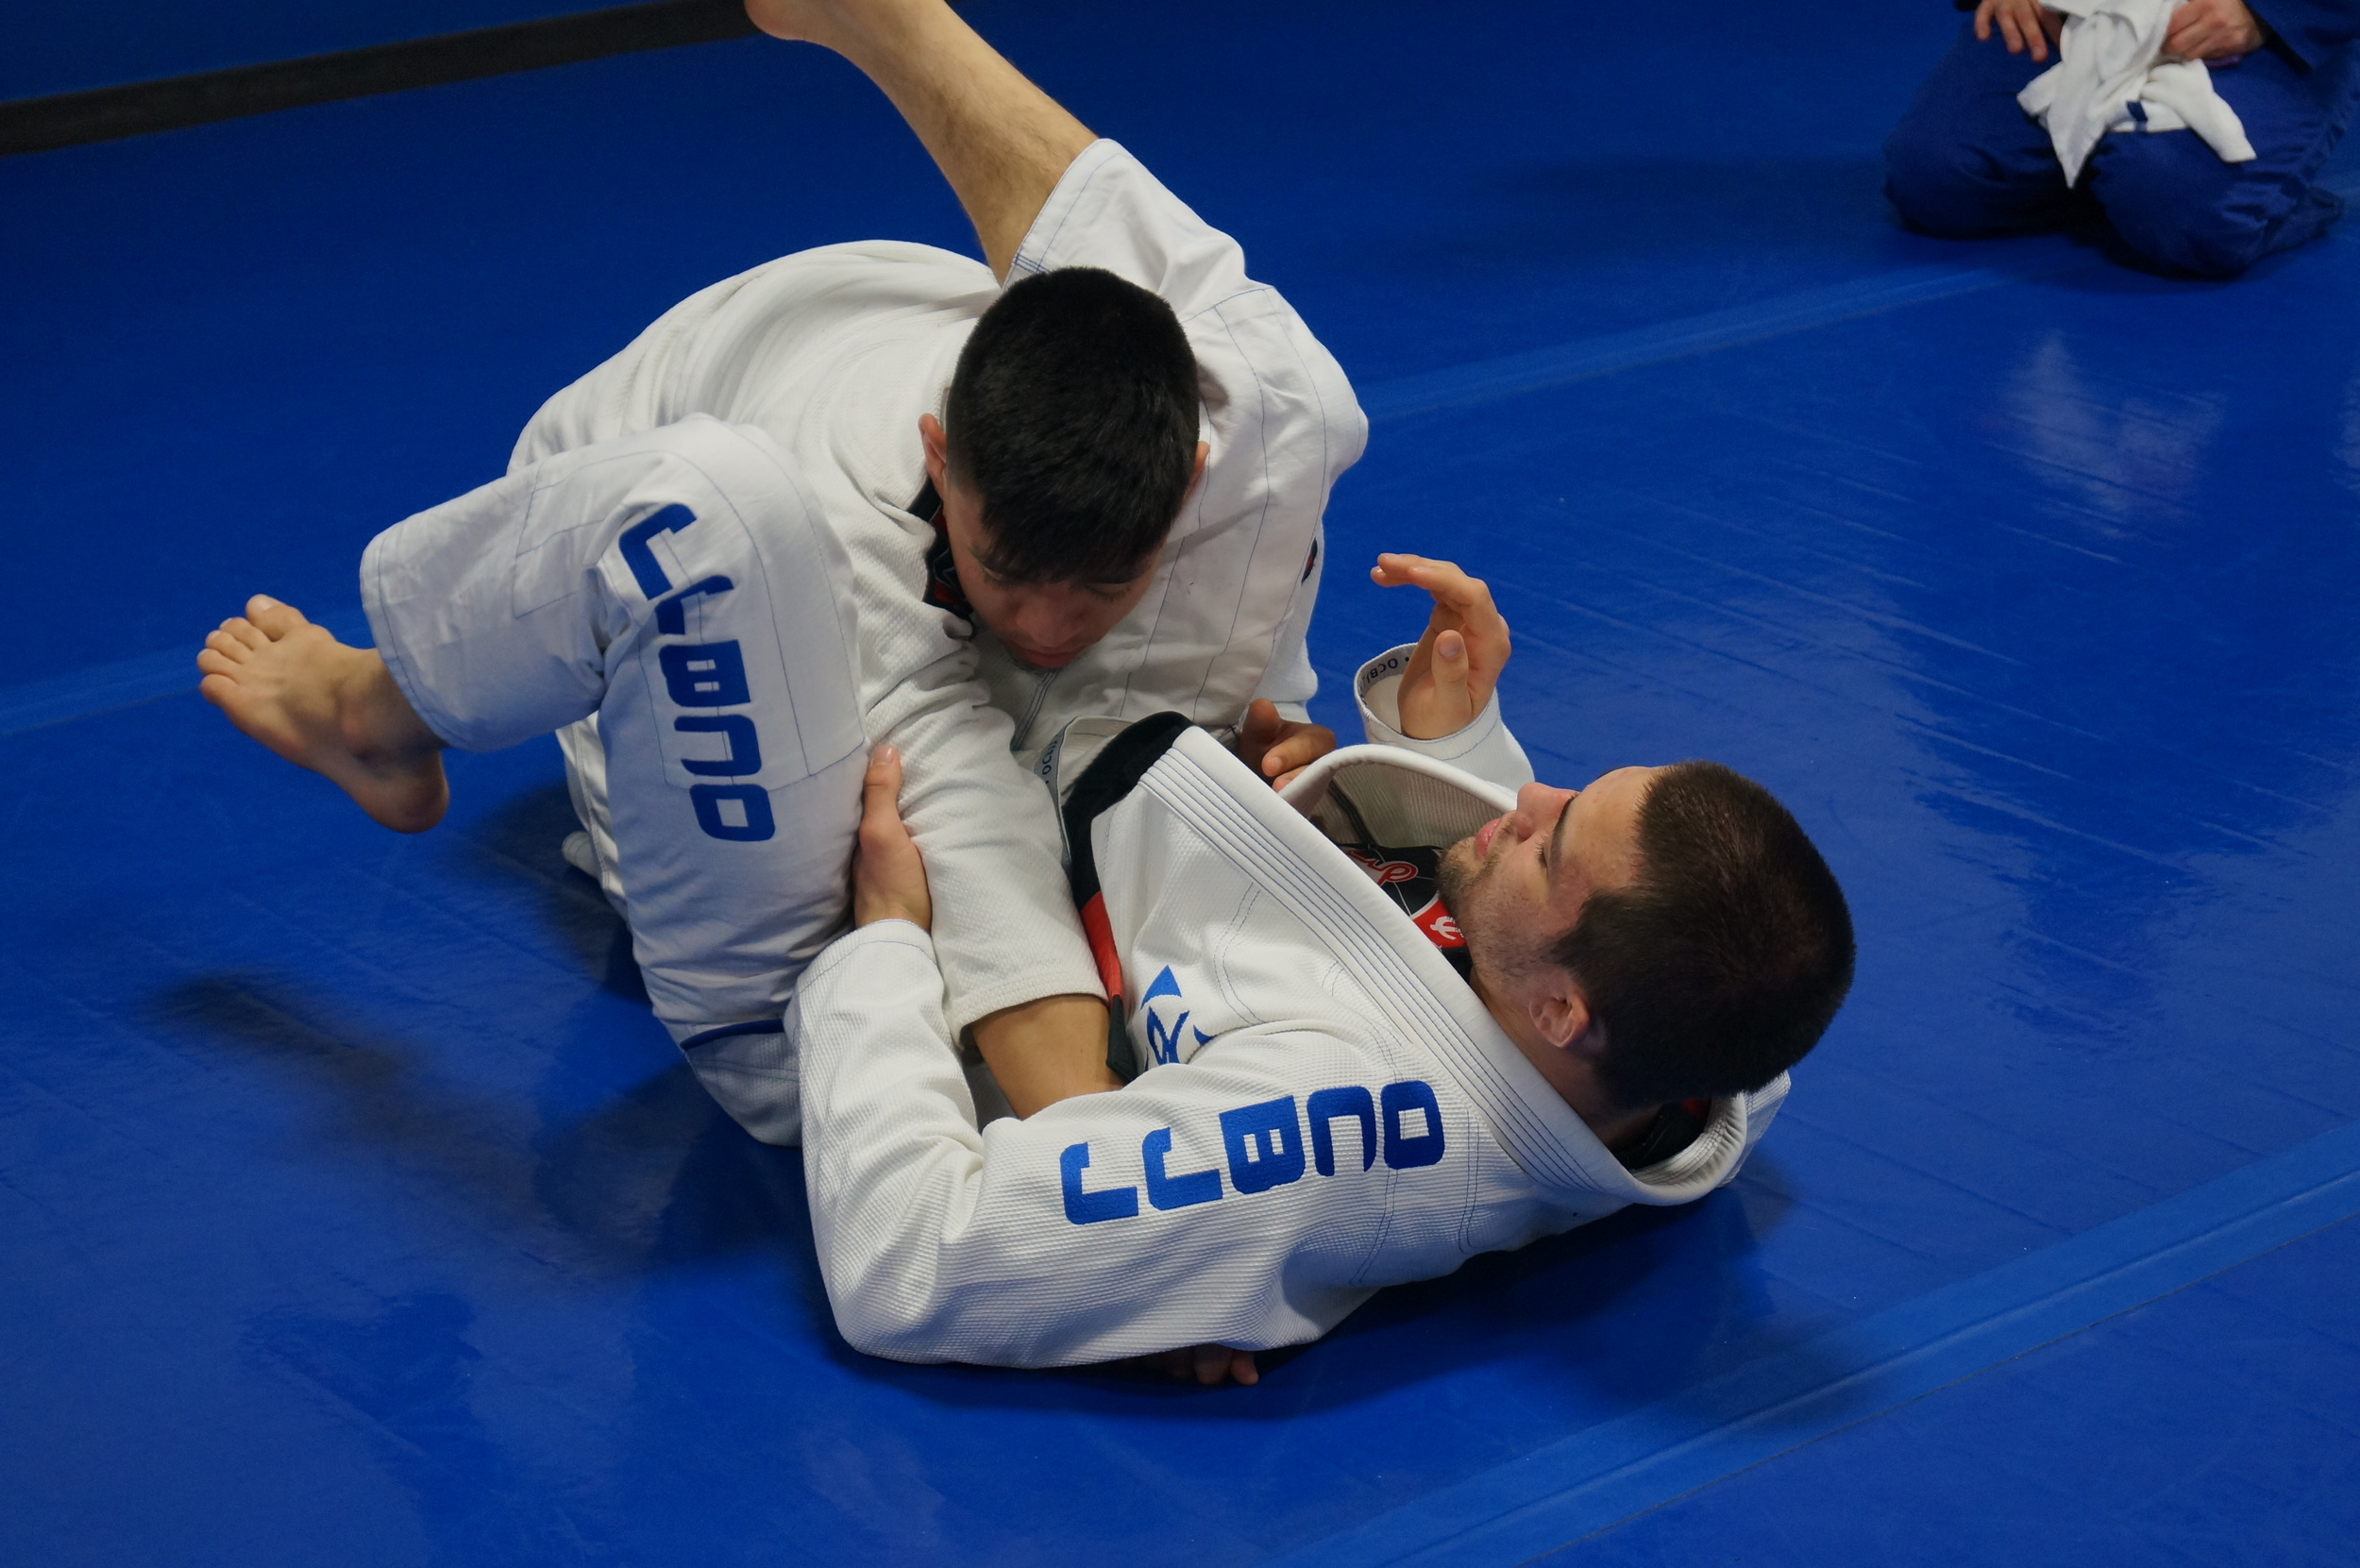 Garry Tonon Bjj Instruction in Brunswick, NJ